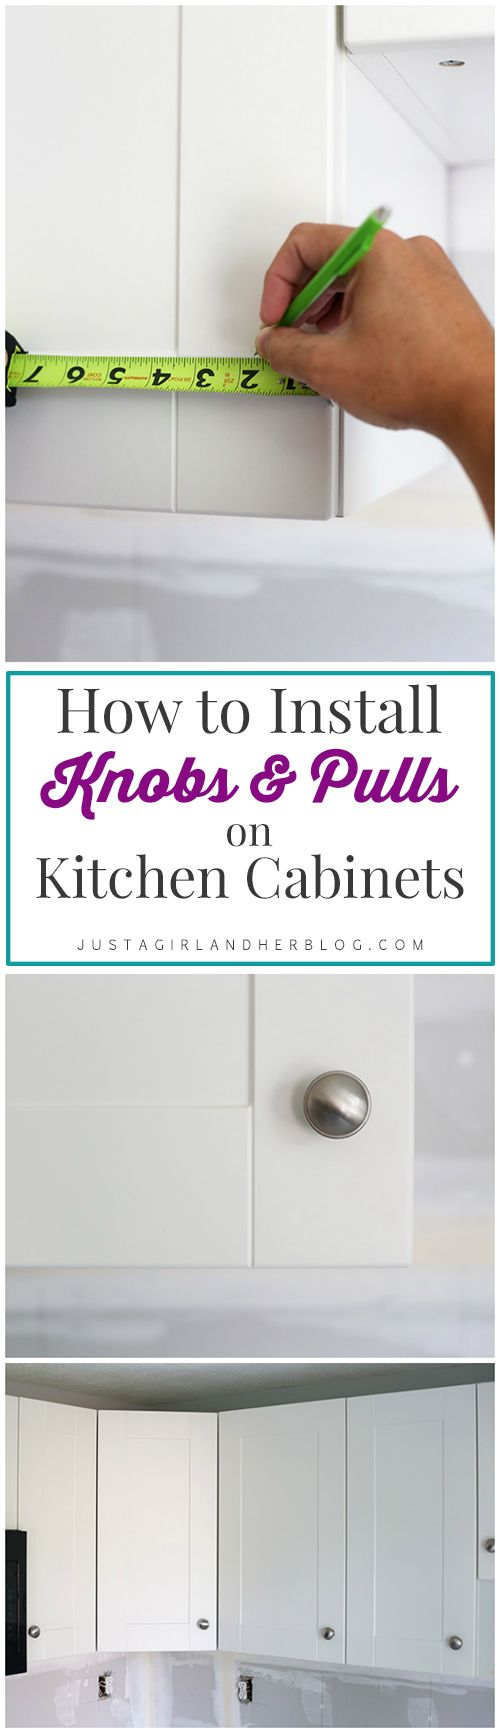 Beautiful Kitchen Update And Cabinet Hardware How To At Just A Girl And Her Blog